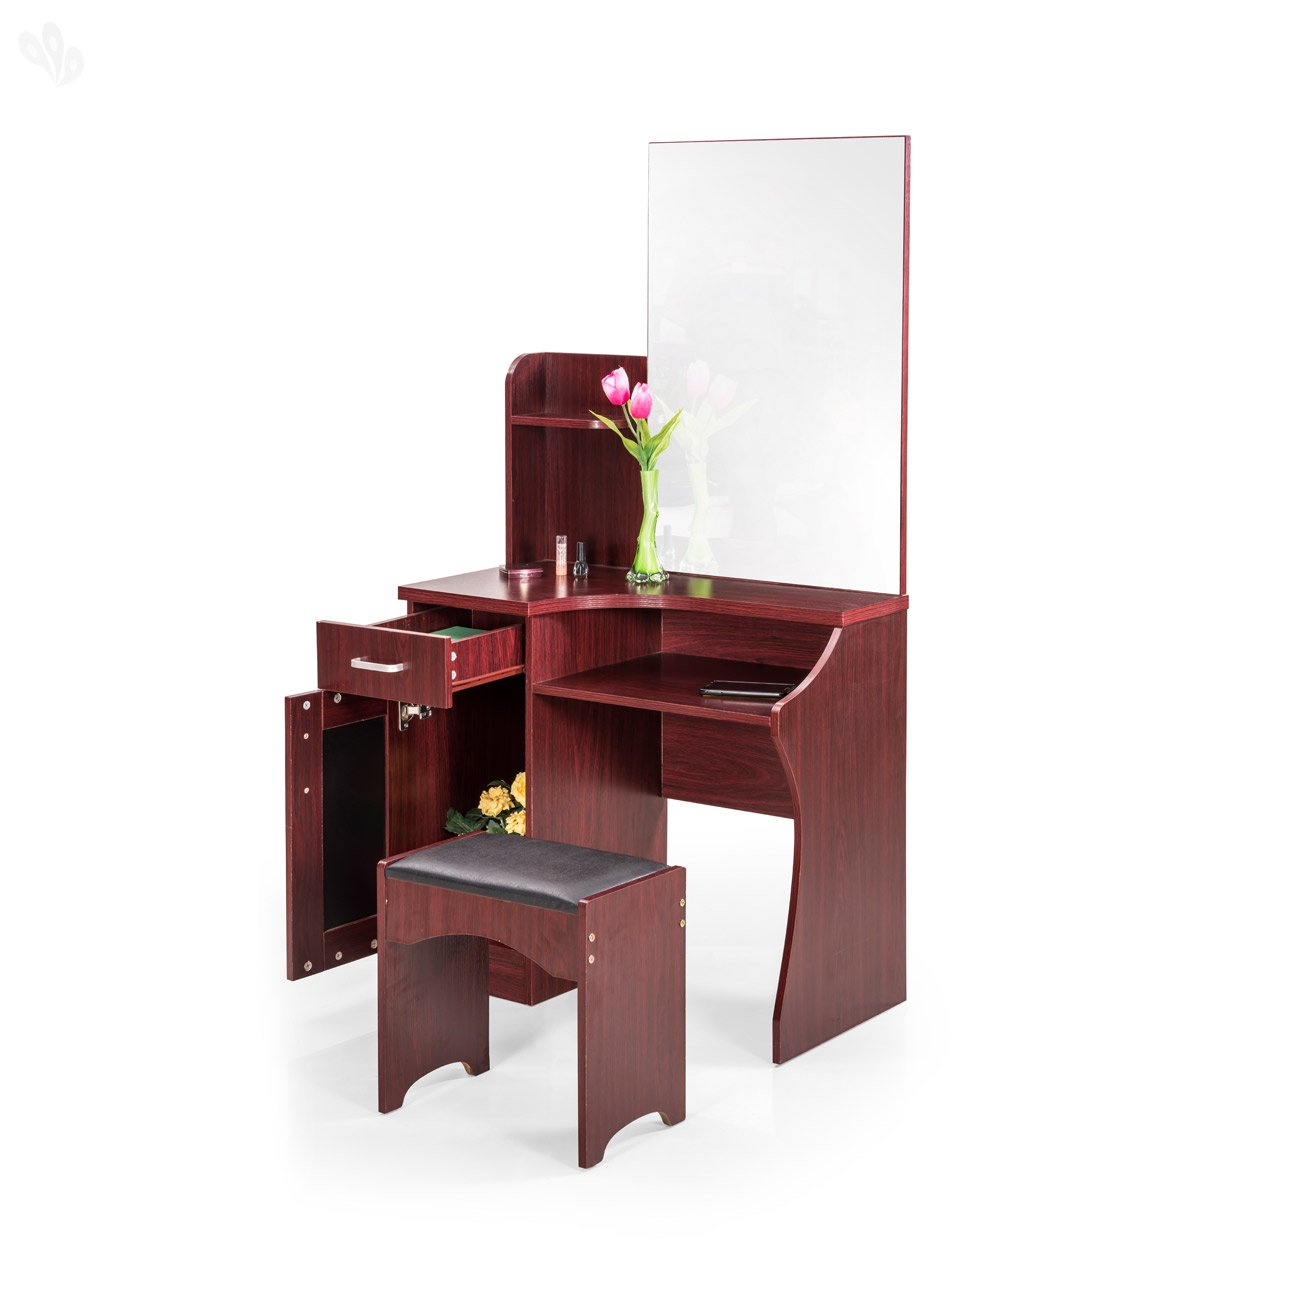 Latest Dressing Table Designs For Bedroom Dressing Tables Buy Dressing Tables Online At Low Prices In